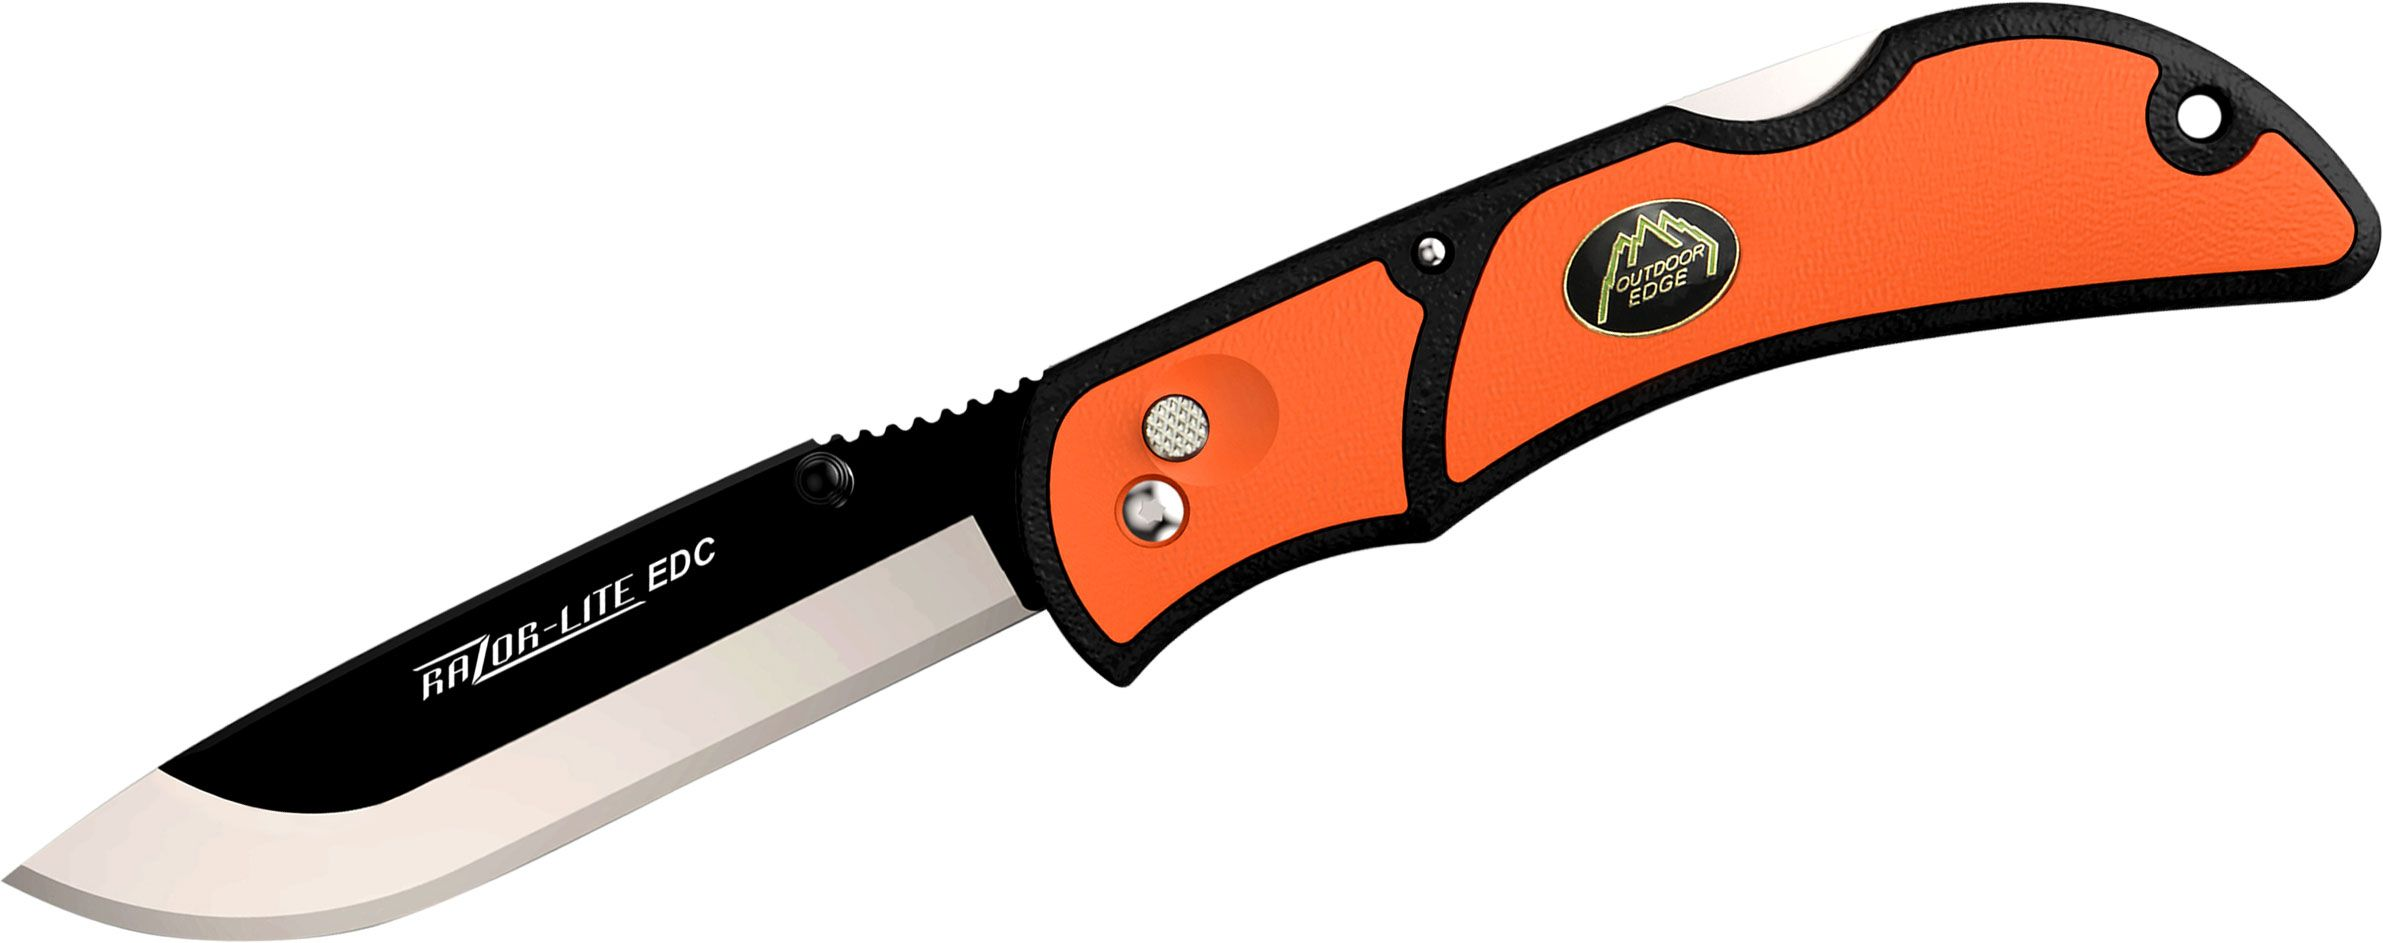 Outdoor Edge Razor-Lite EDC Folding Hunter 3.5 inch Replaceable Blade, Orange Rubberized TPR Handles